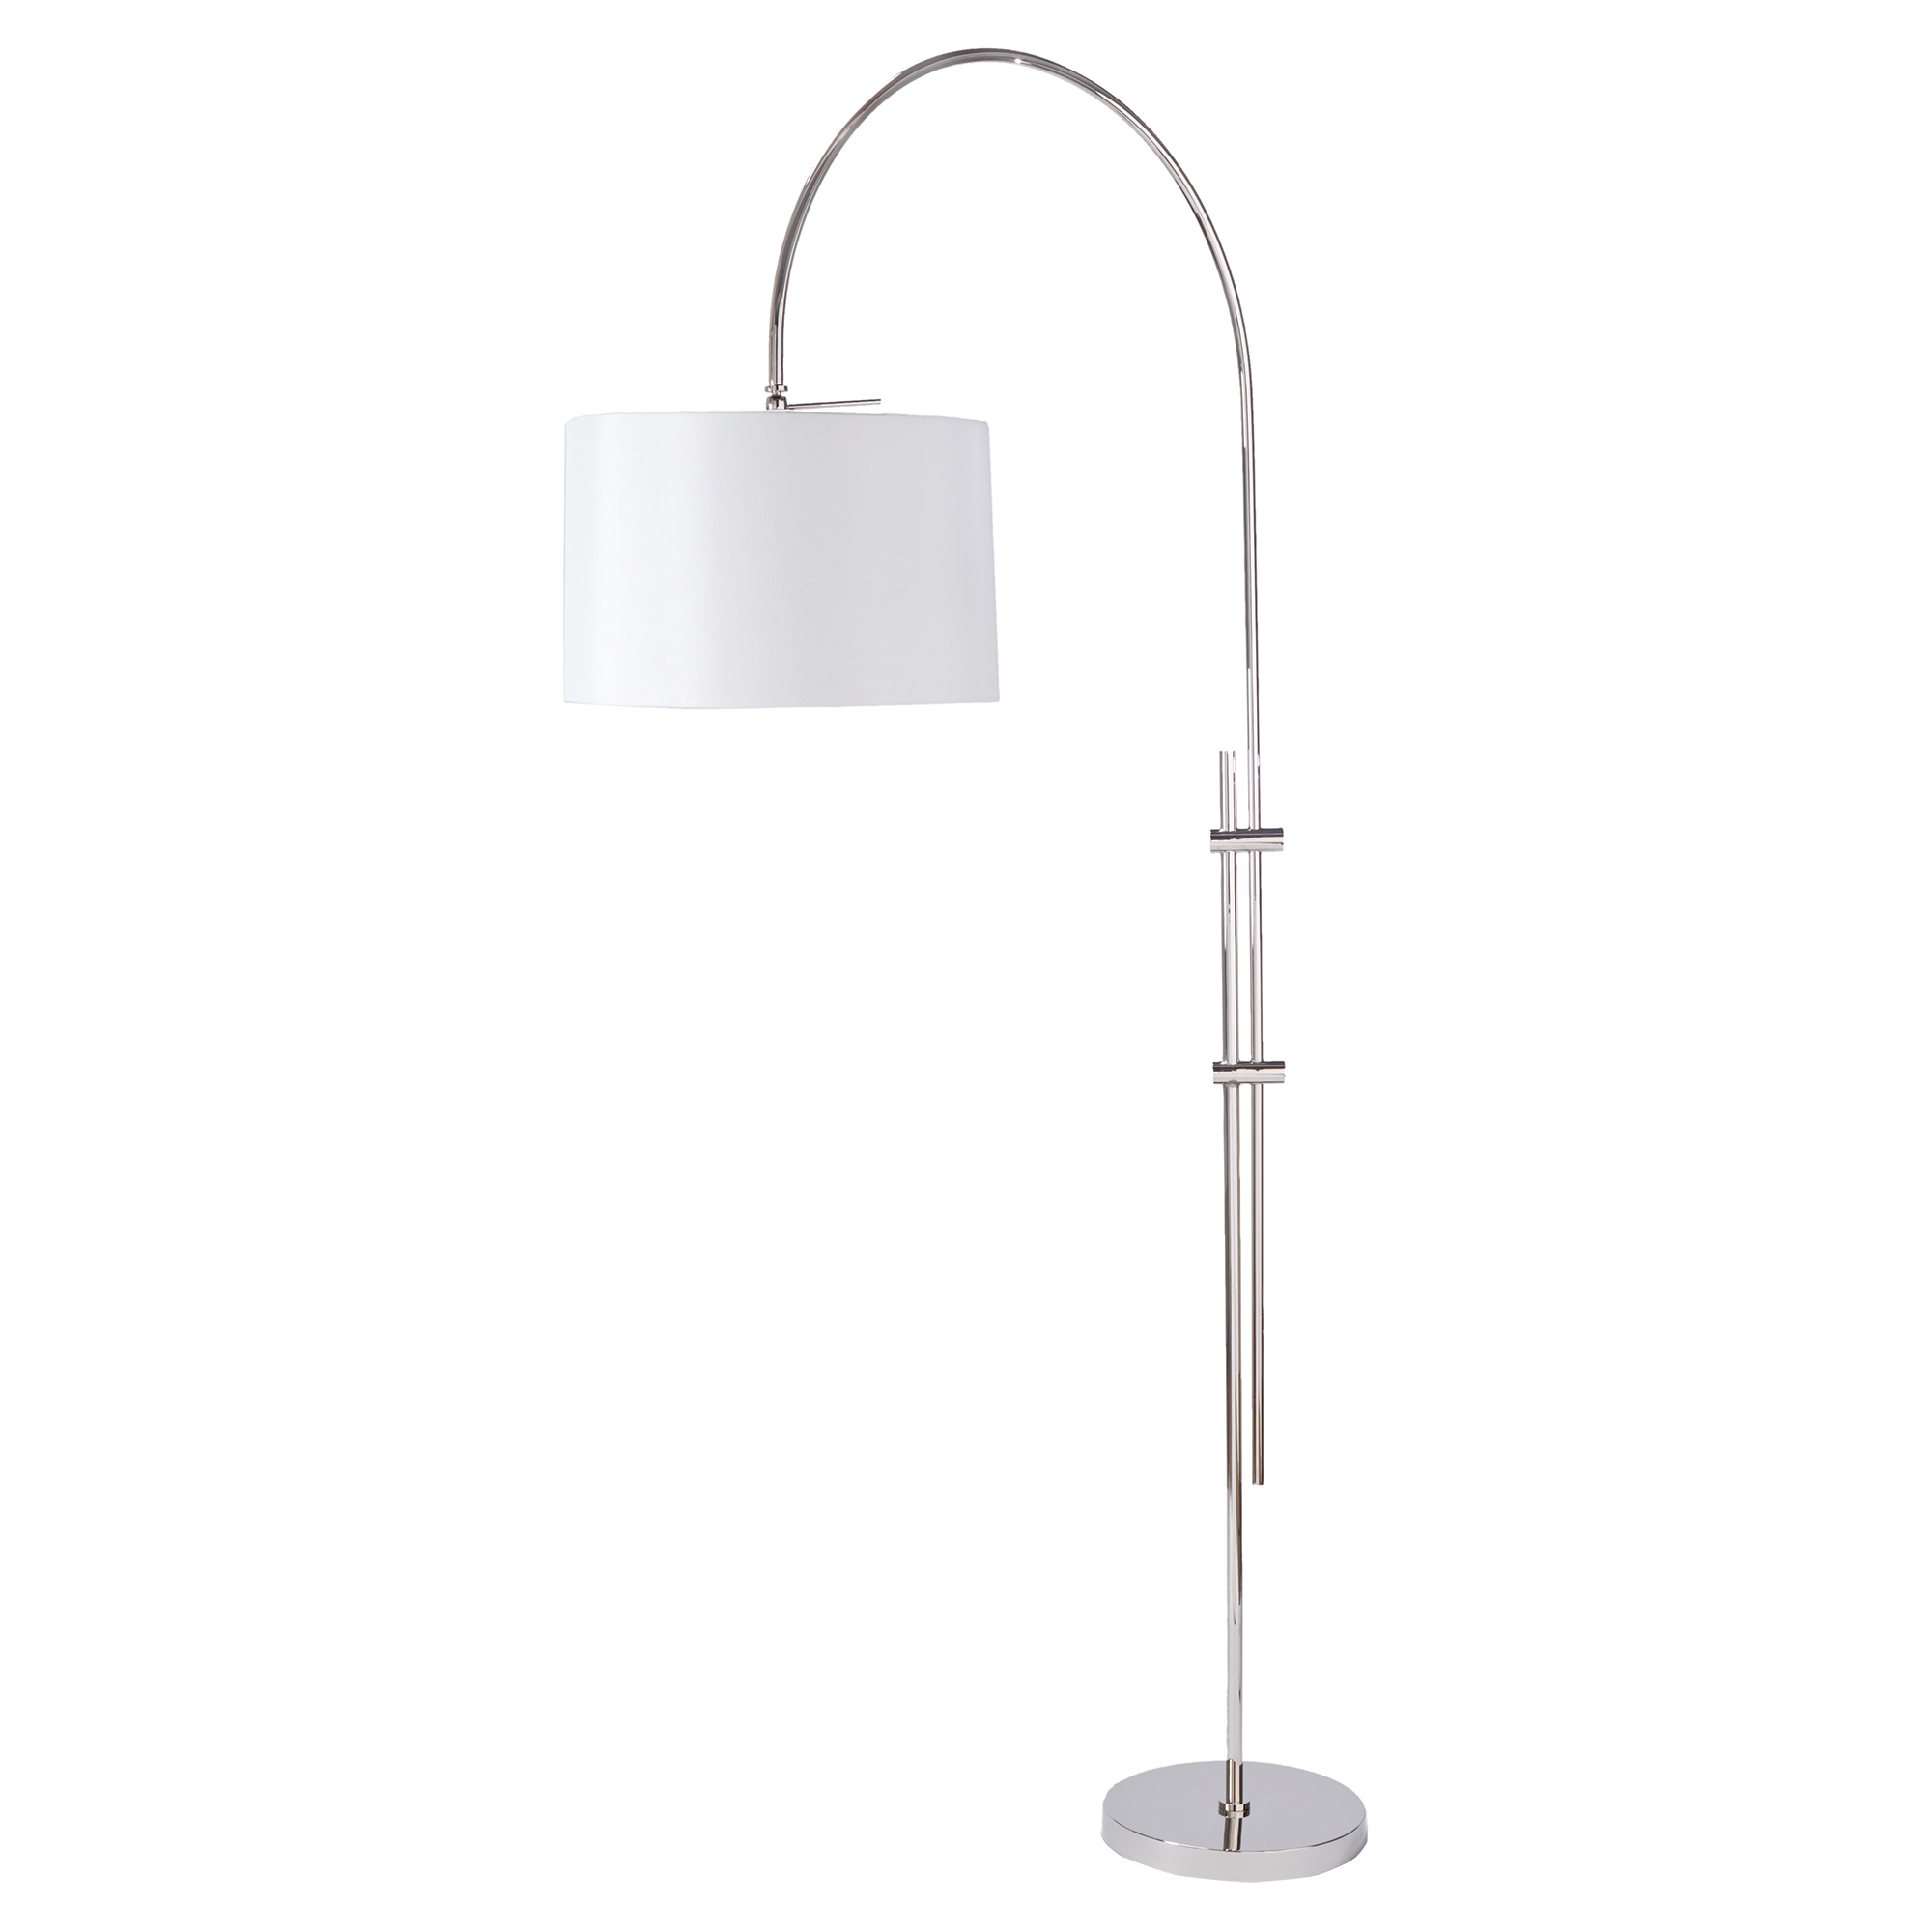 Sully Modern Classic Delicate Arch Silver Floor Lamp